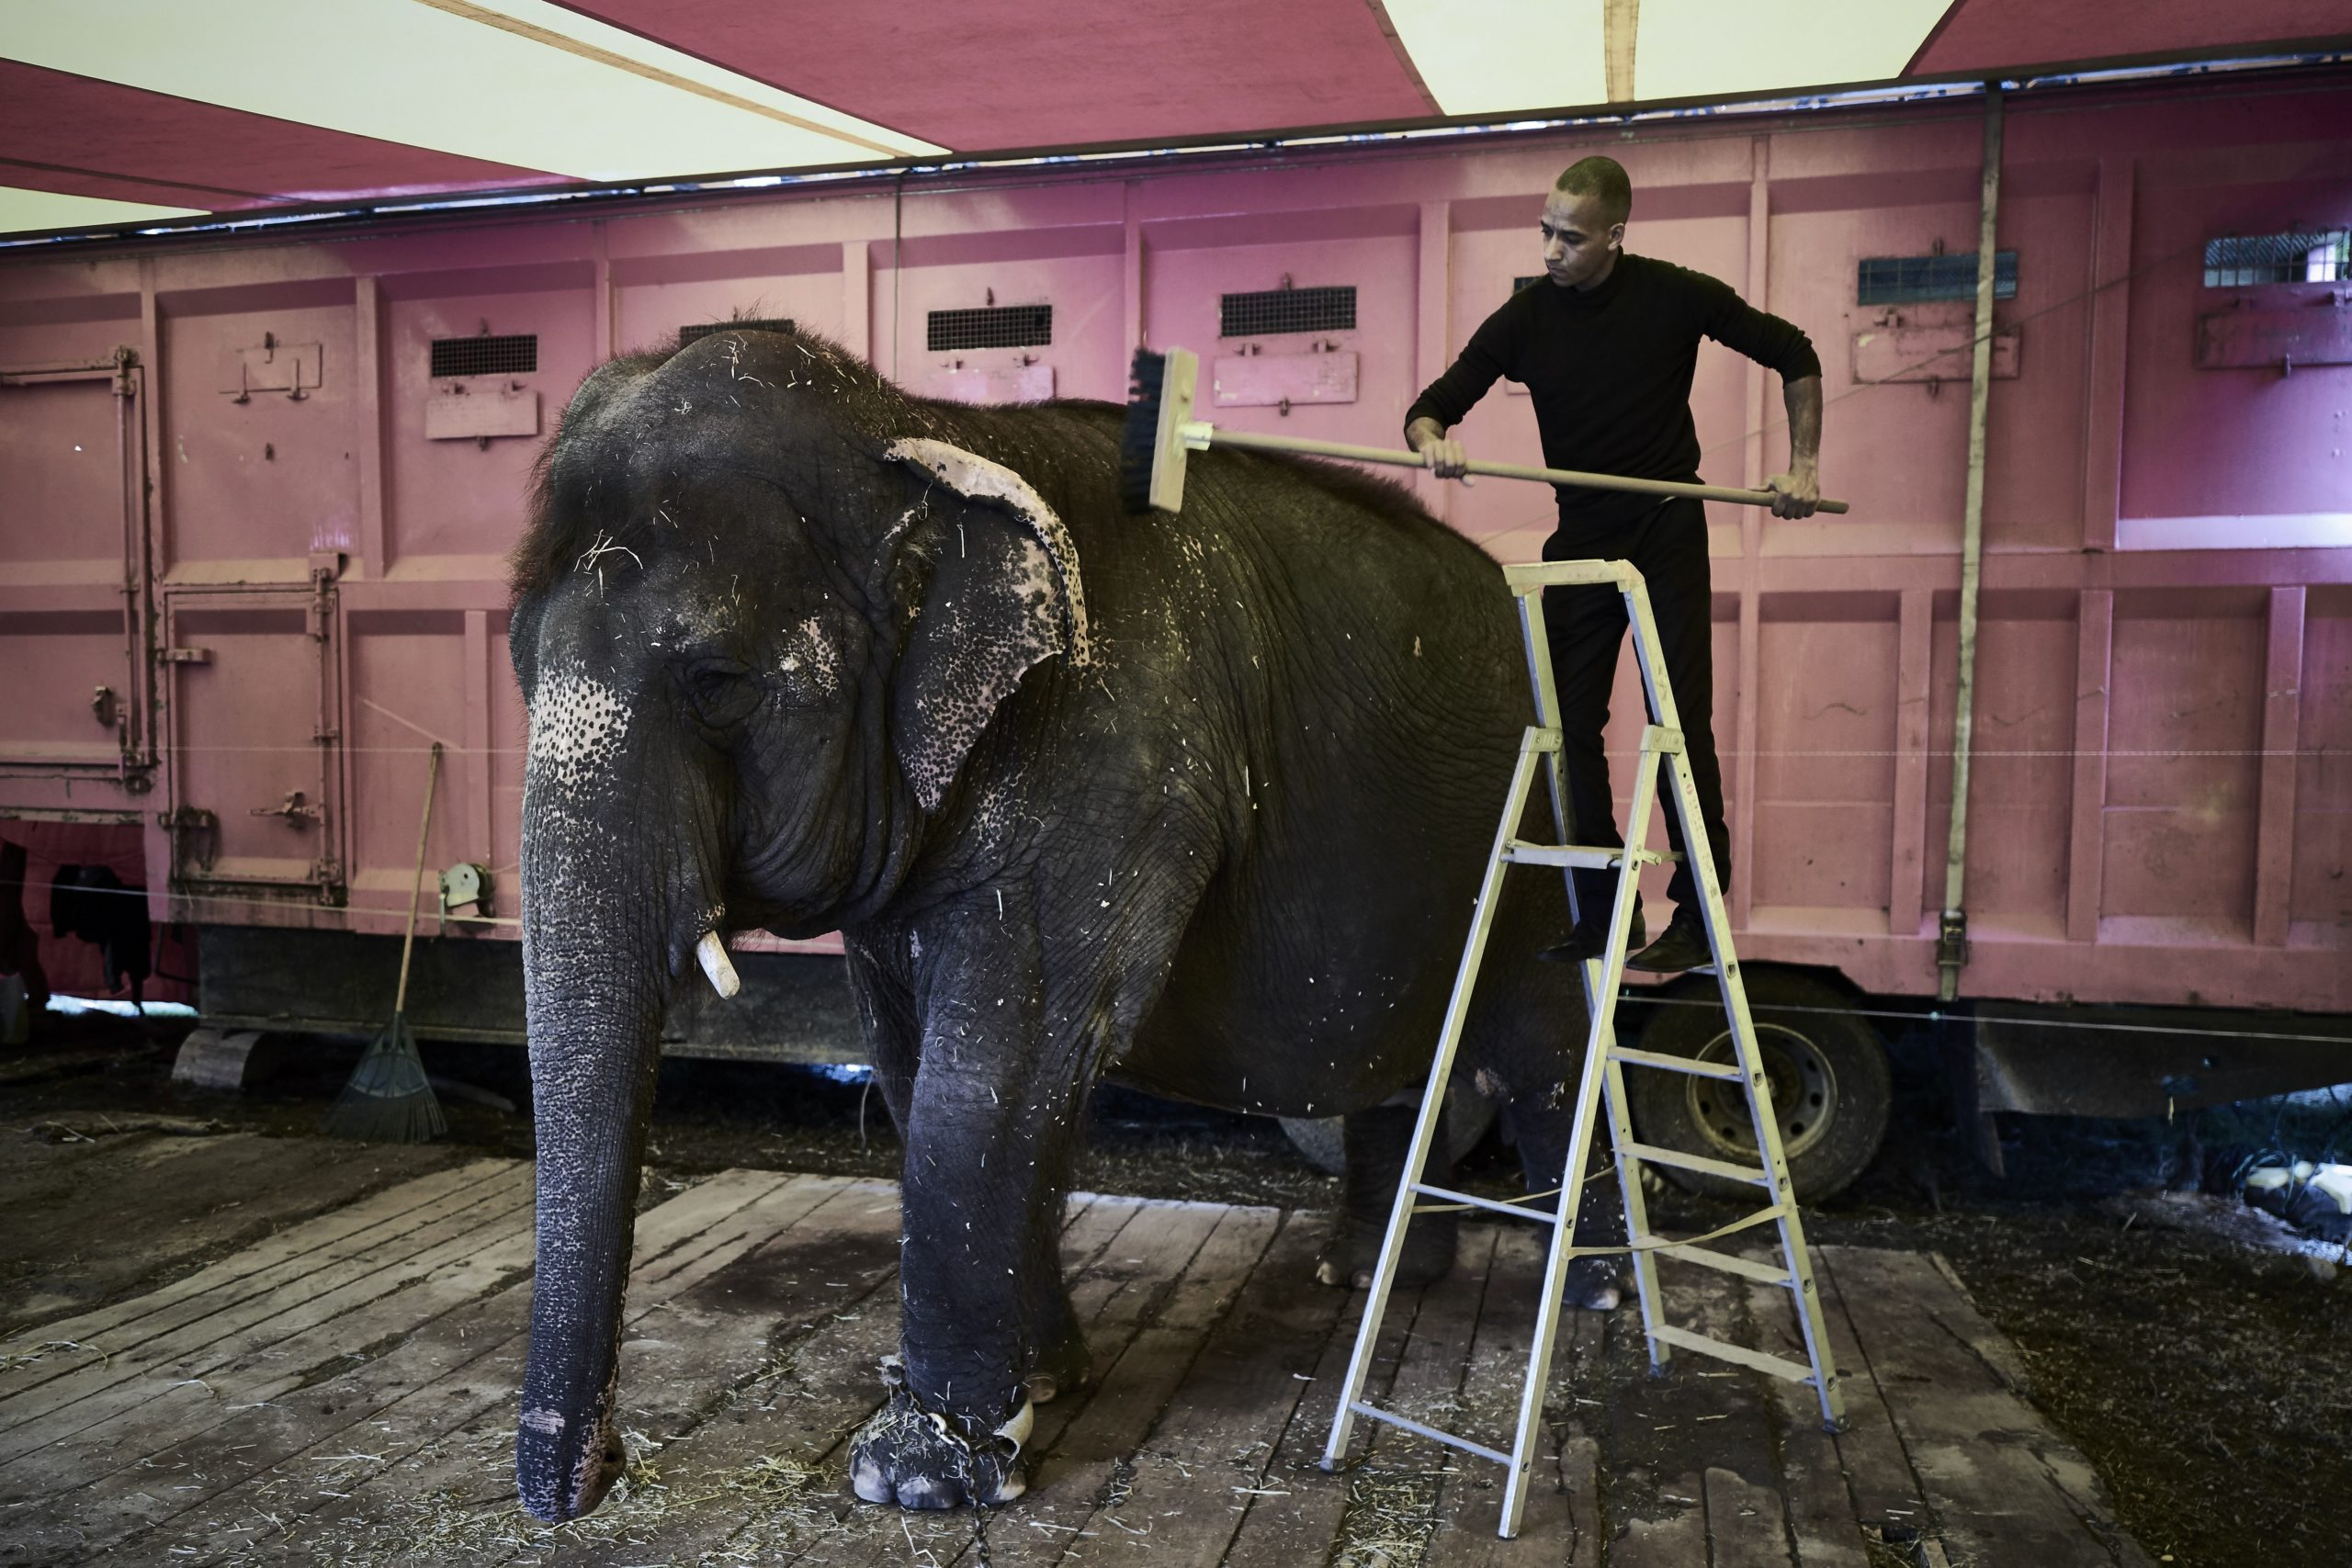 A man cleans an elephant at the Medrano Circus, as the travelling circus set up his circus tent in Lyon on October 16, 2016. Created in 1897 by Spanish clown Géronimo Médrano, the circus is the biggest French travelling circus with about 10 million spectators each year. 120 people from 14 different nationalities, technicians, fitters and artists take part in this success. / AFP / JEAN-PHILIPPE KSIAZEK (Photo credit should read JEAN-PHILIPPE KSIAZEK/AFP via Getty Images)